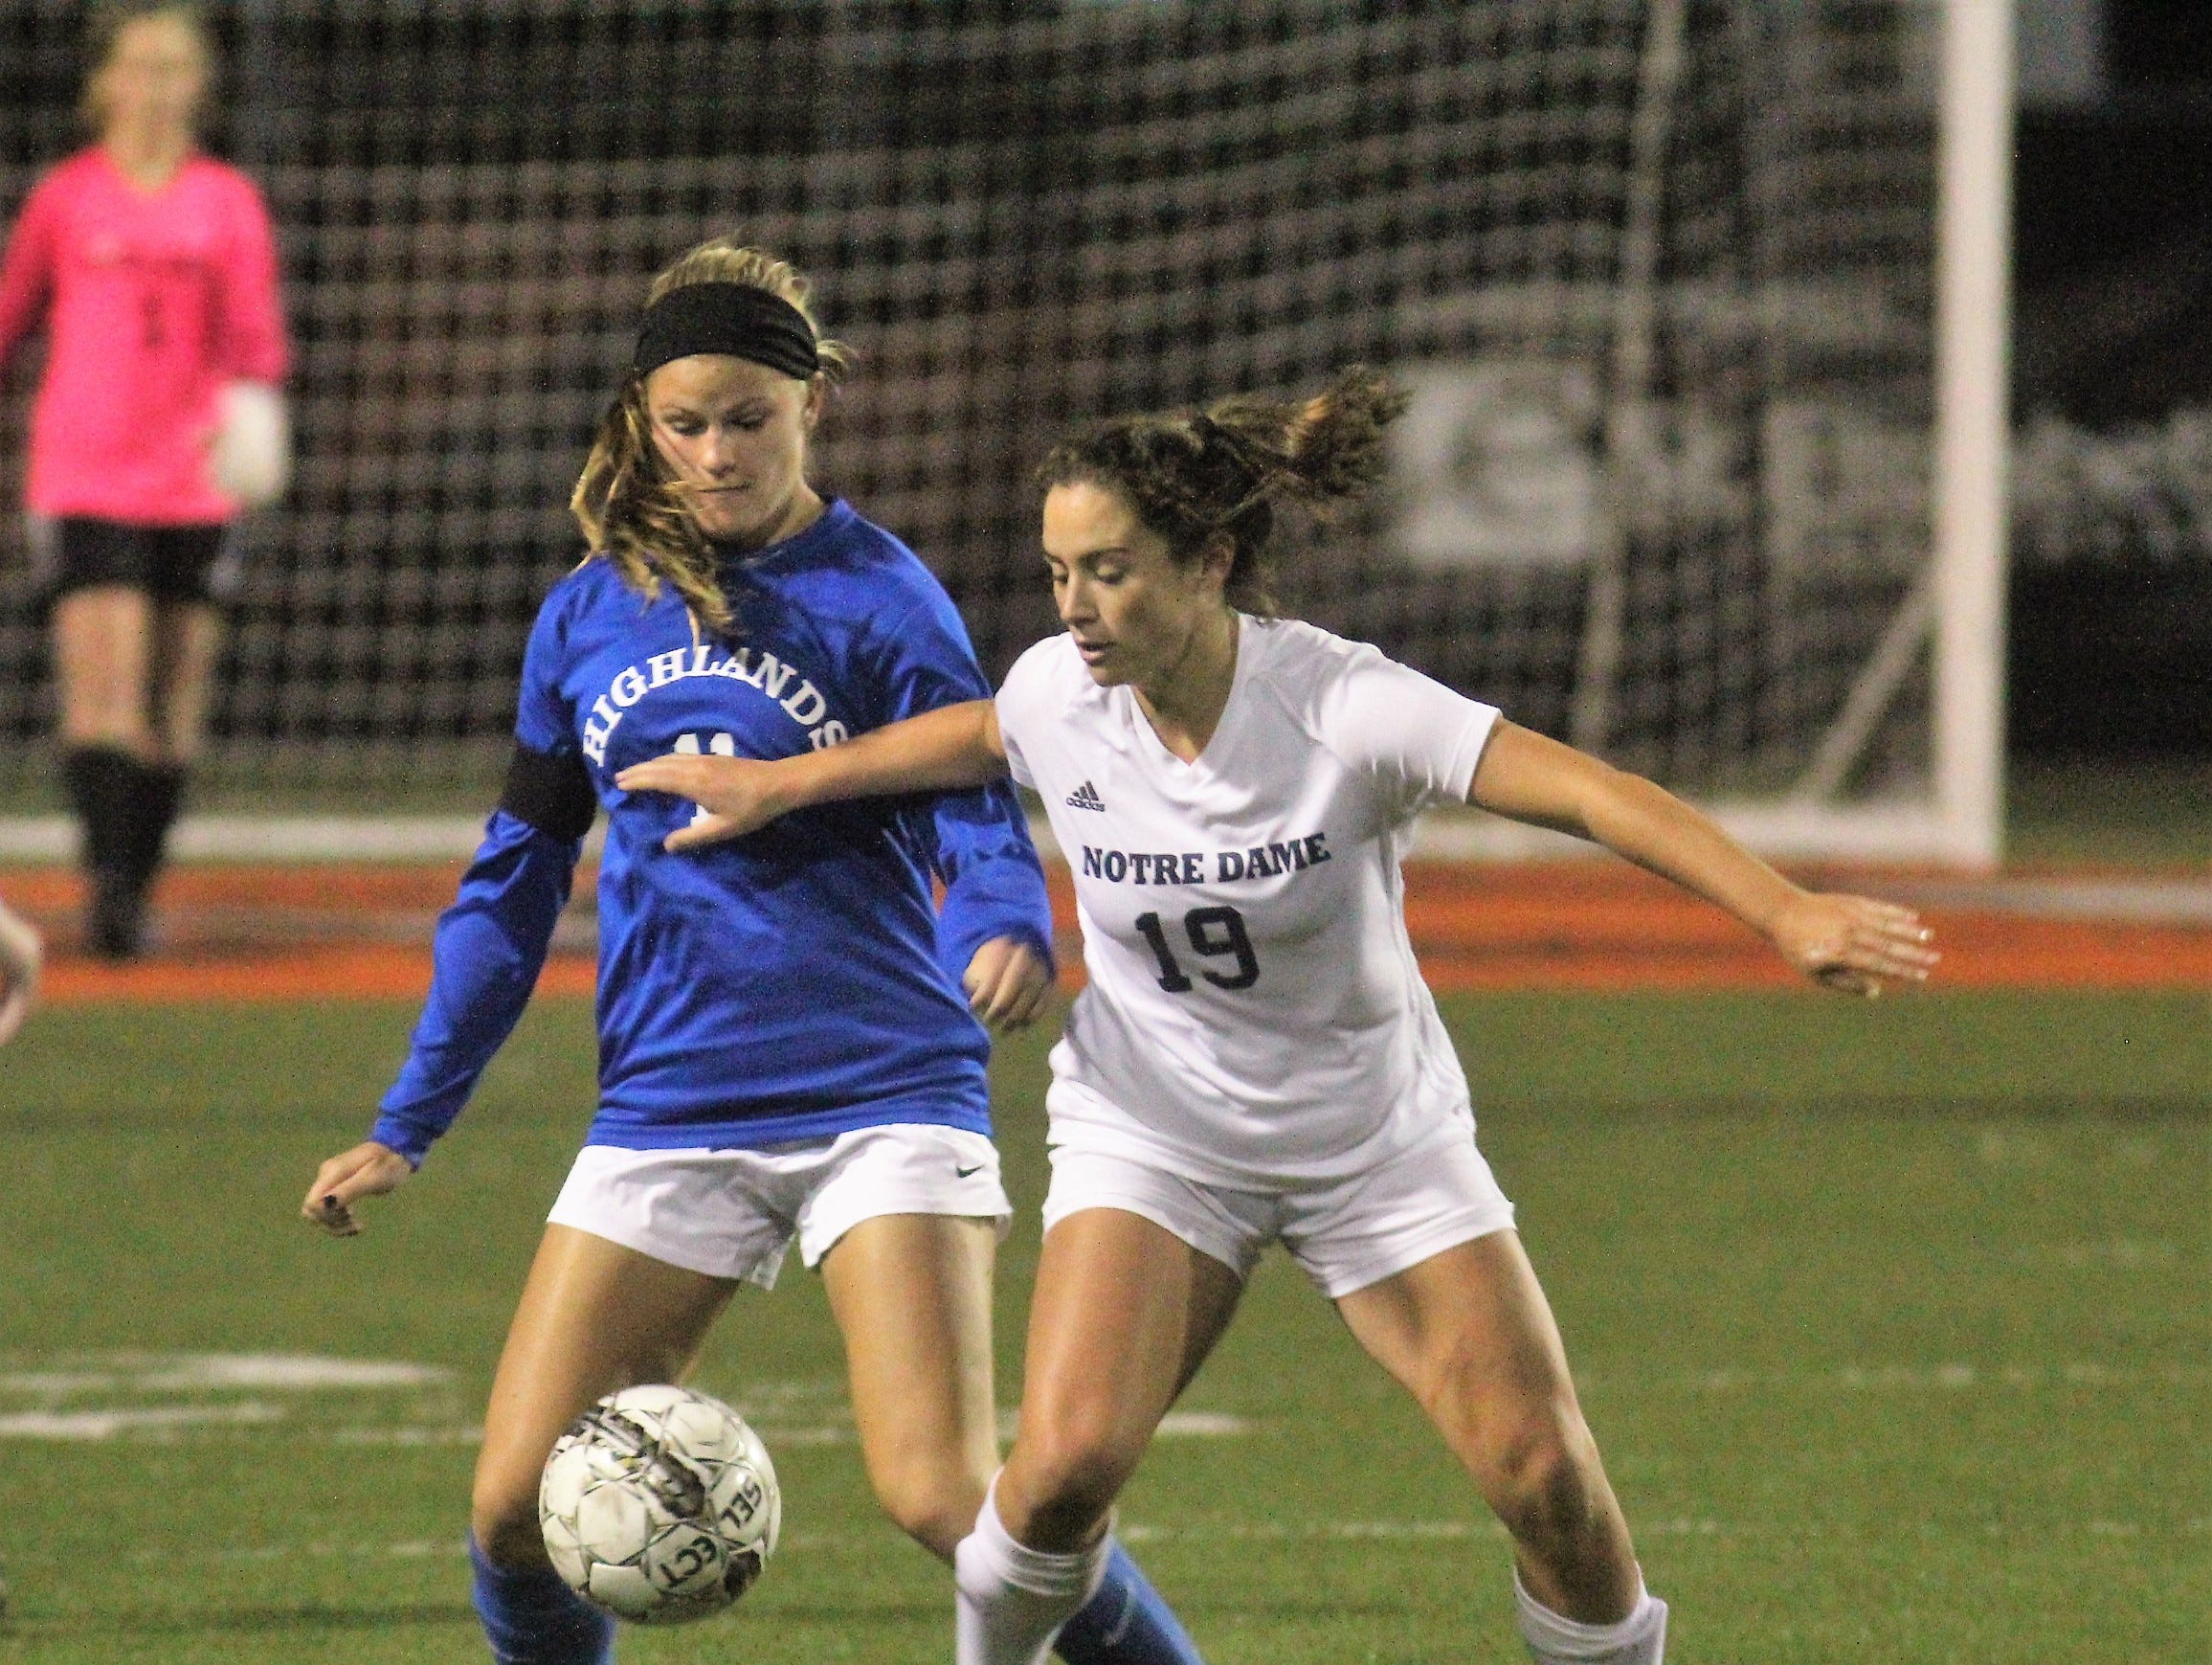 Highlands senior Hannah Hartman, left, and Notre Dame senior Lily Dorning battle for the ball during Highlands' 1-0 win over Notre Dame in the 9th Region girls soccer championship game Oct. 18, 2018 at Ryle High School, Union, Ky.